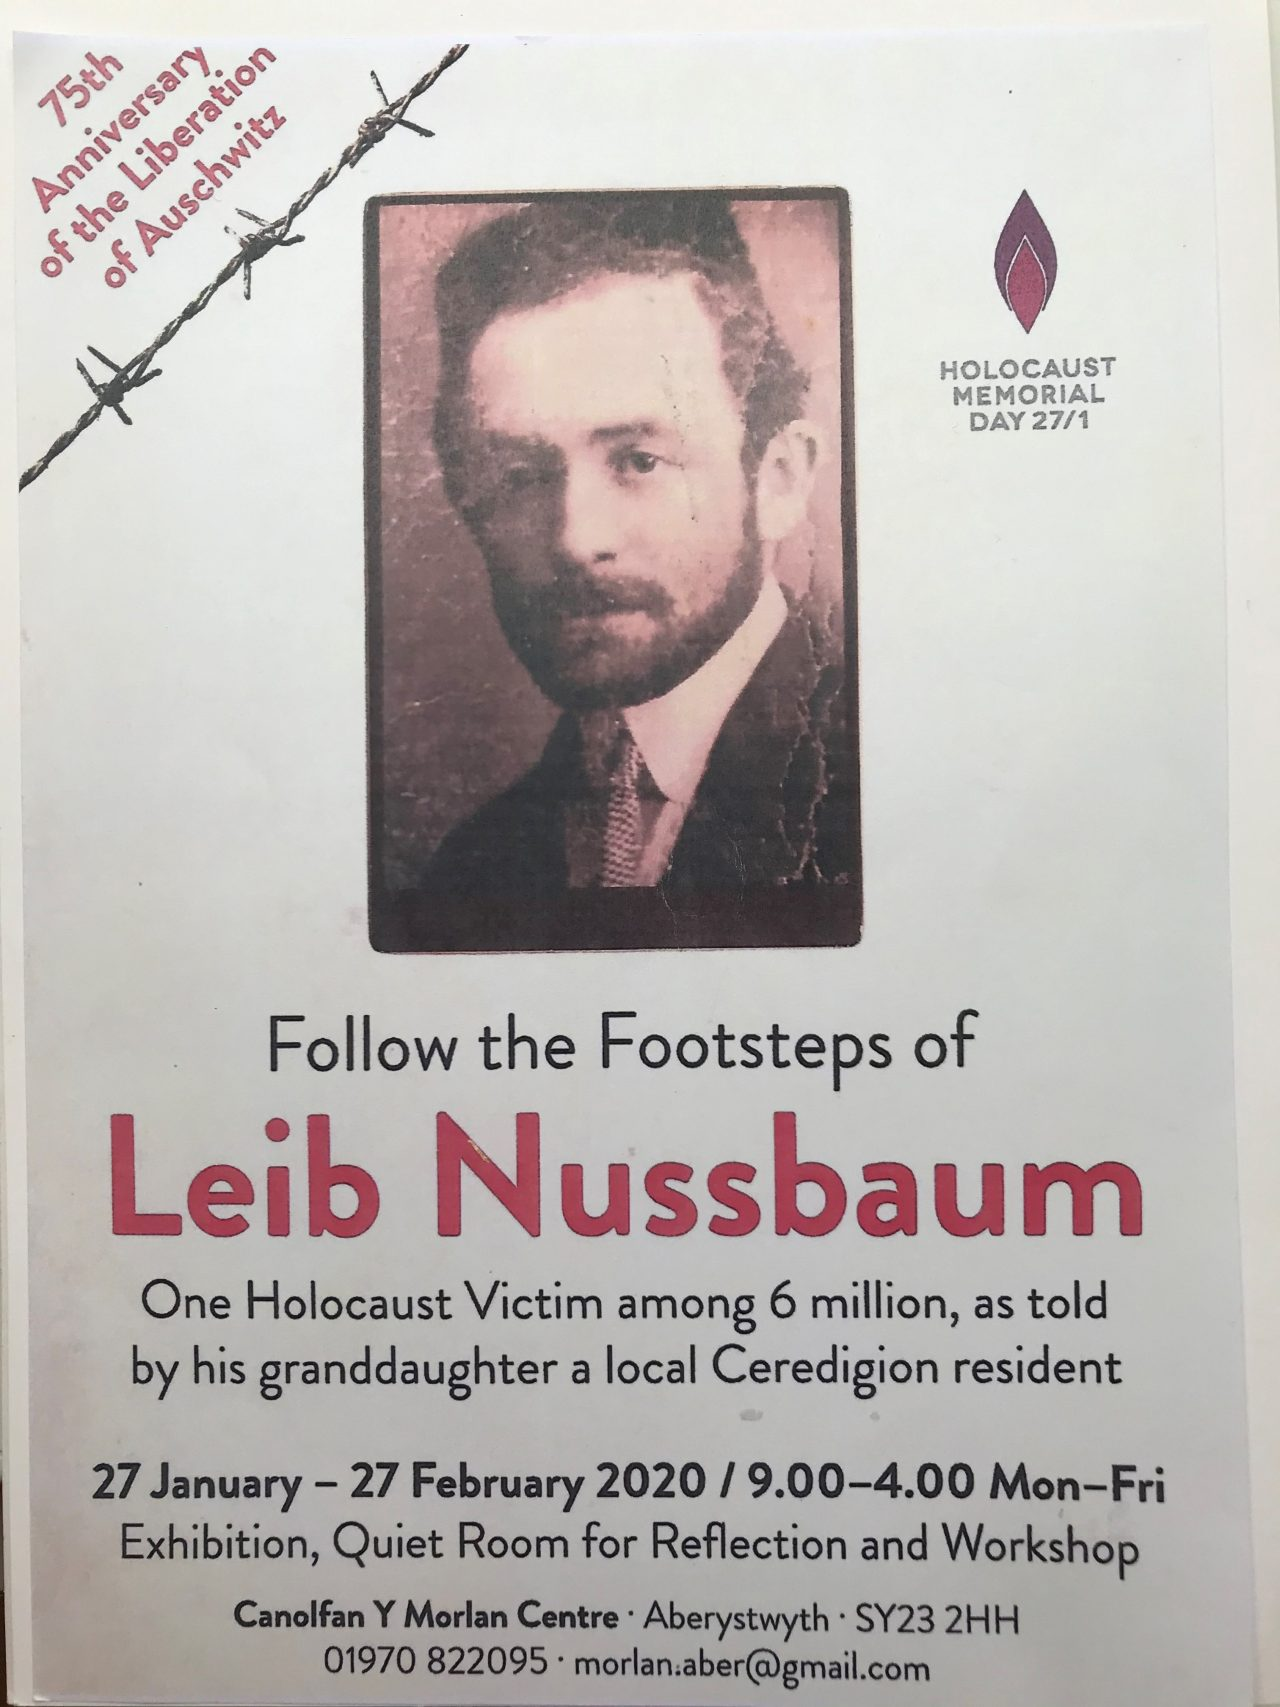 """"""" Follow in the Footsteps of Leib Nussbaum"""" One holocaust victim among six million, as told by his granddaughter, a local Ceredigion resident"""